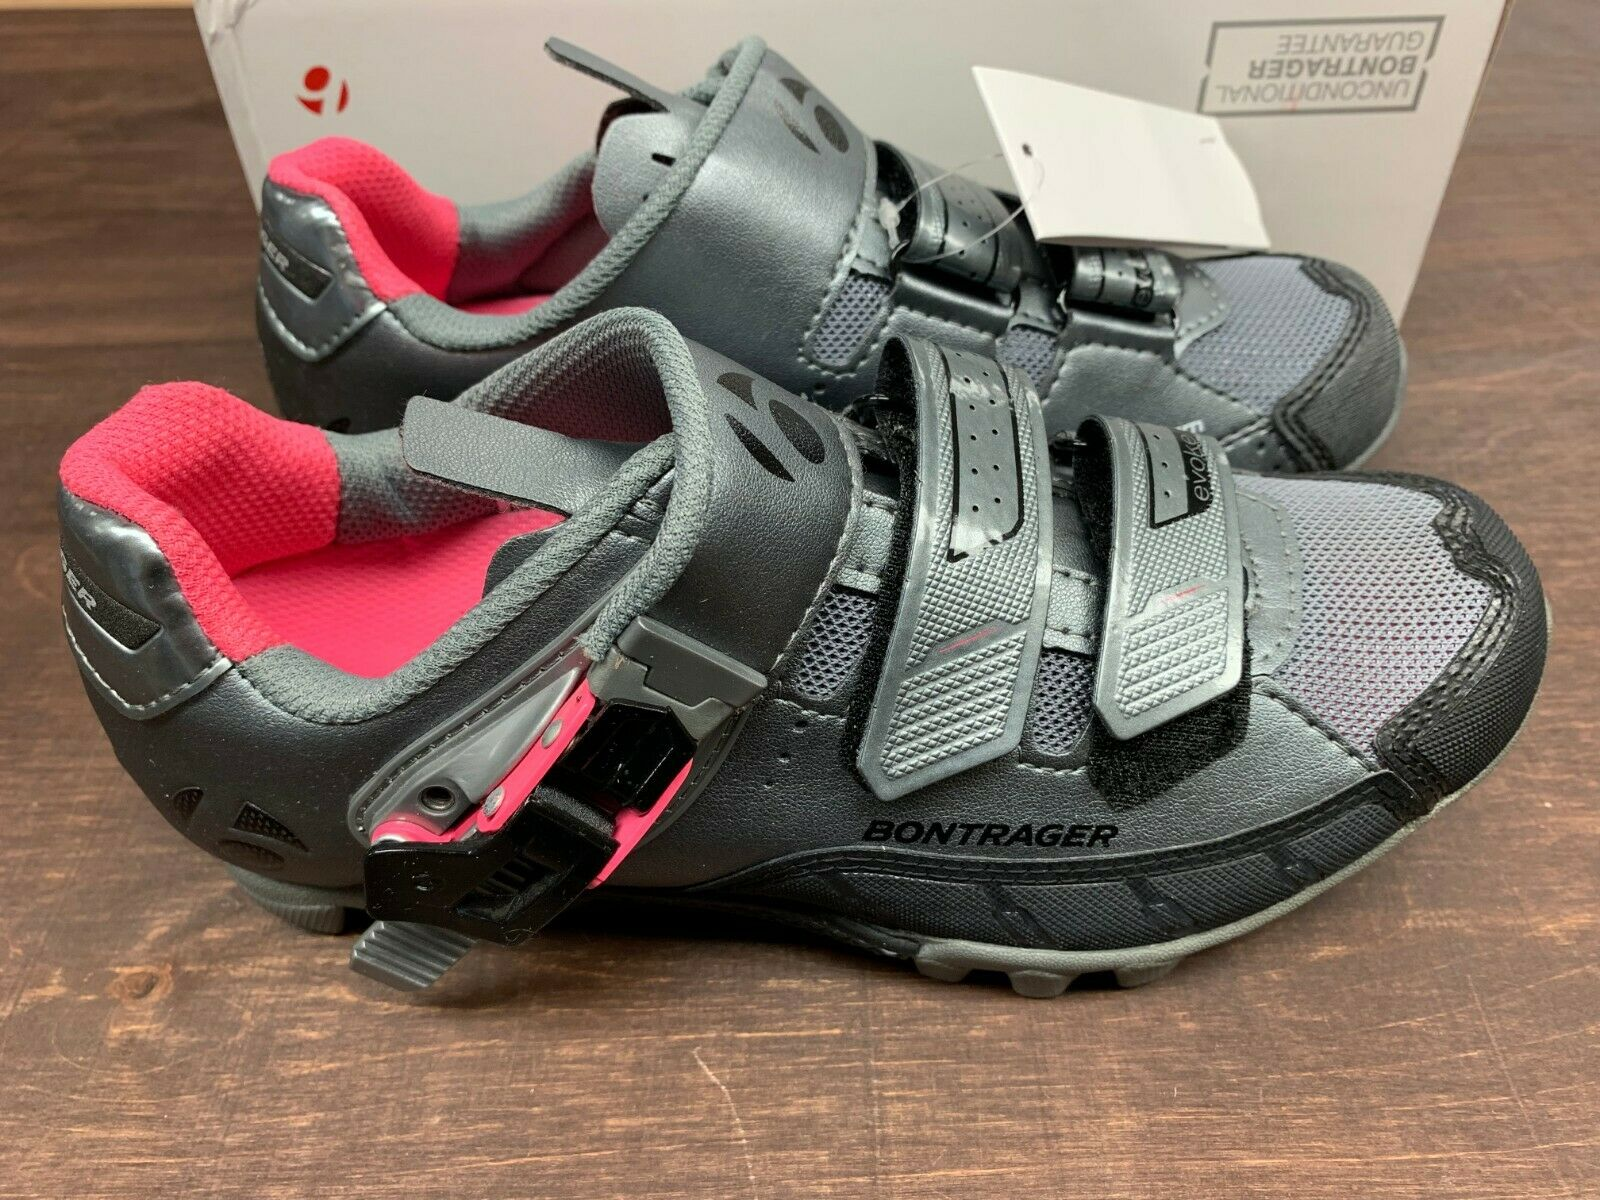 Bontrager Evoke DLX MTB Women's  Cycling shoes 37 US New in Box  factory outlets